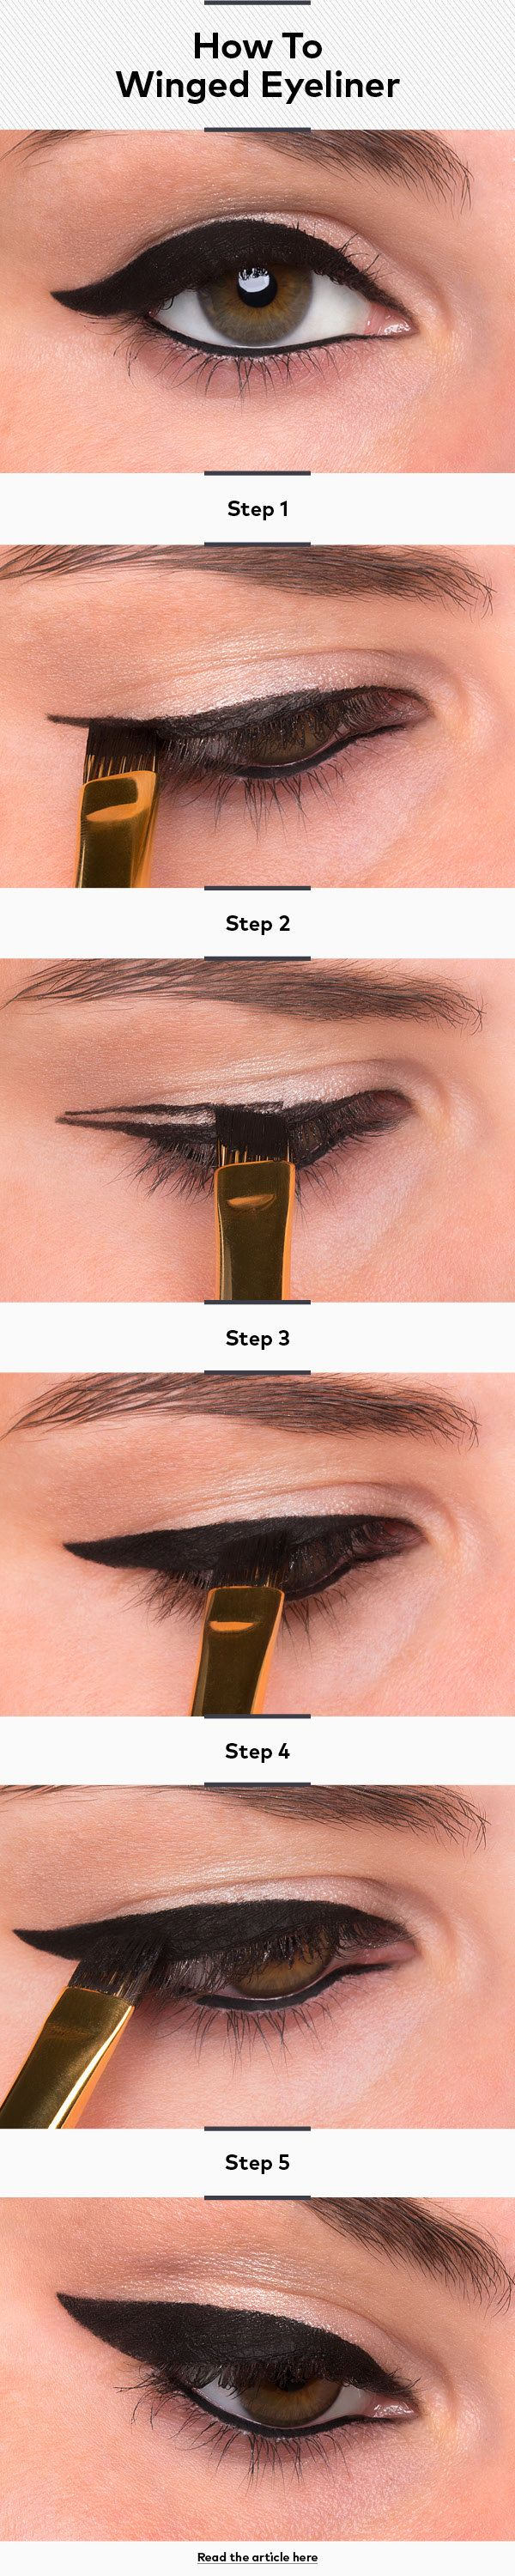 How To Do Winged Eyeliner or Cat-Eye Liner | Beautylish